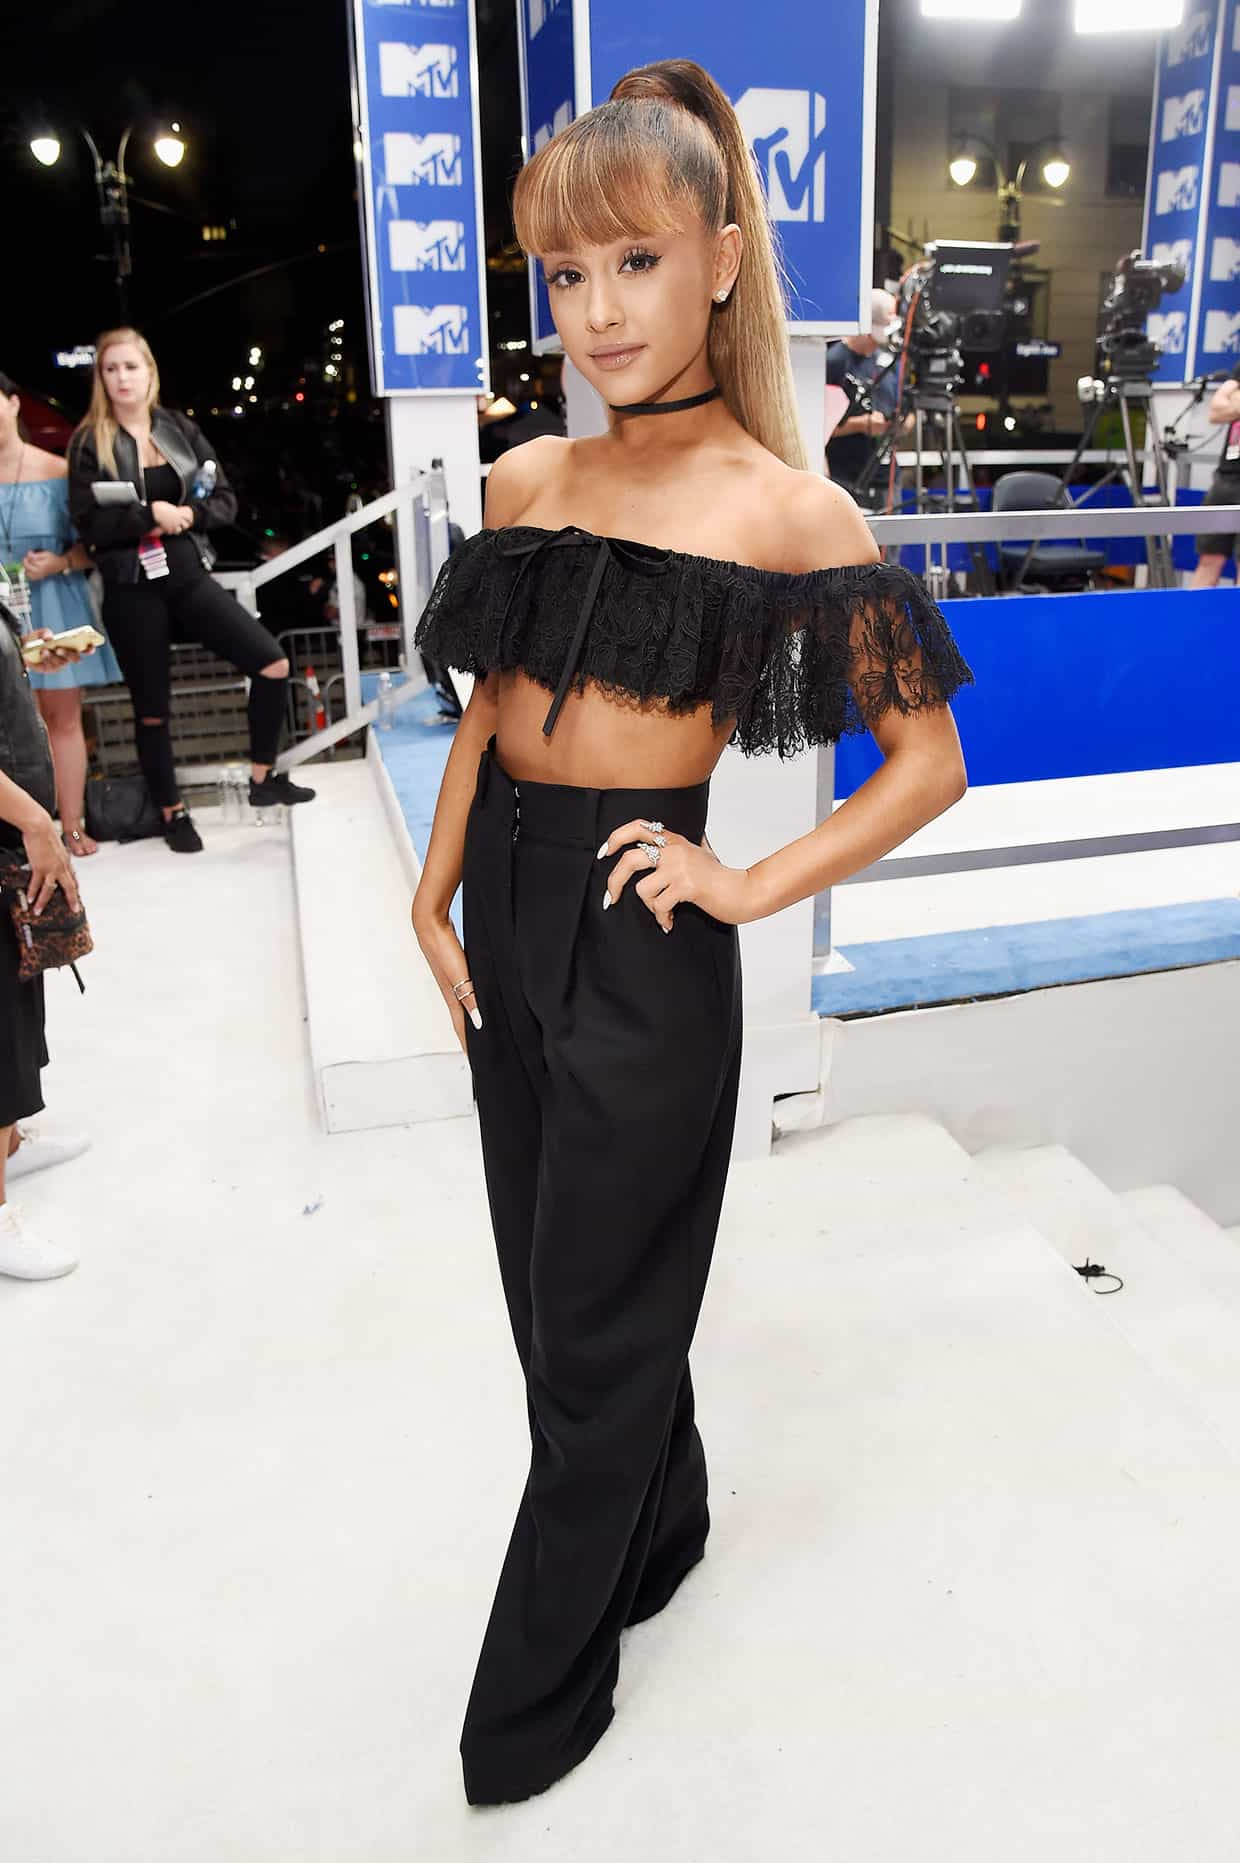 vmas-2016-red-carpet-10